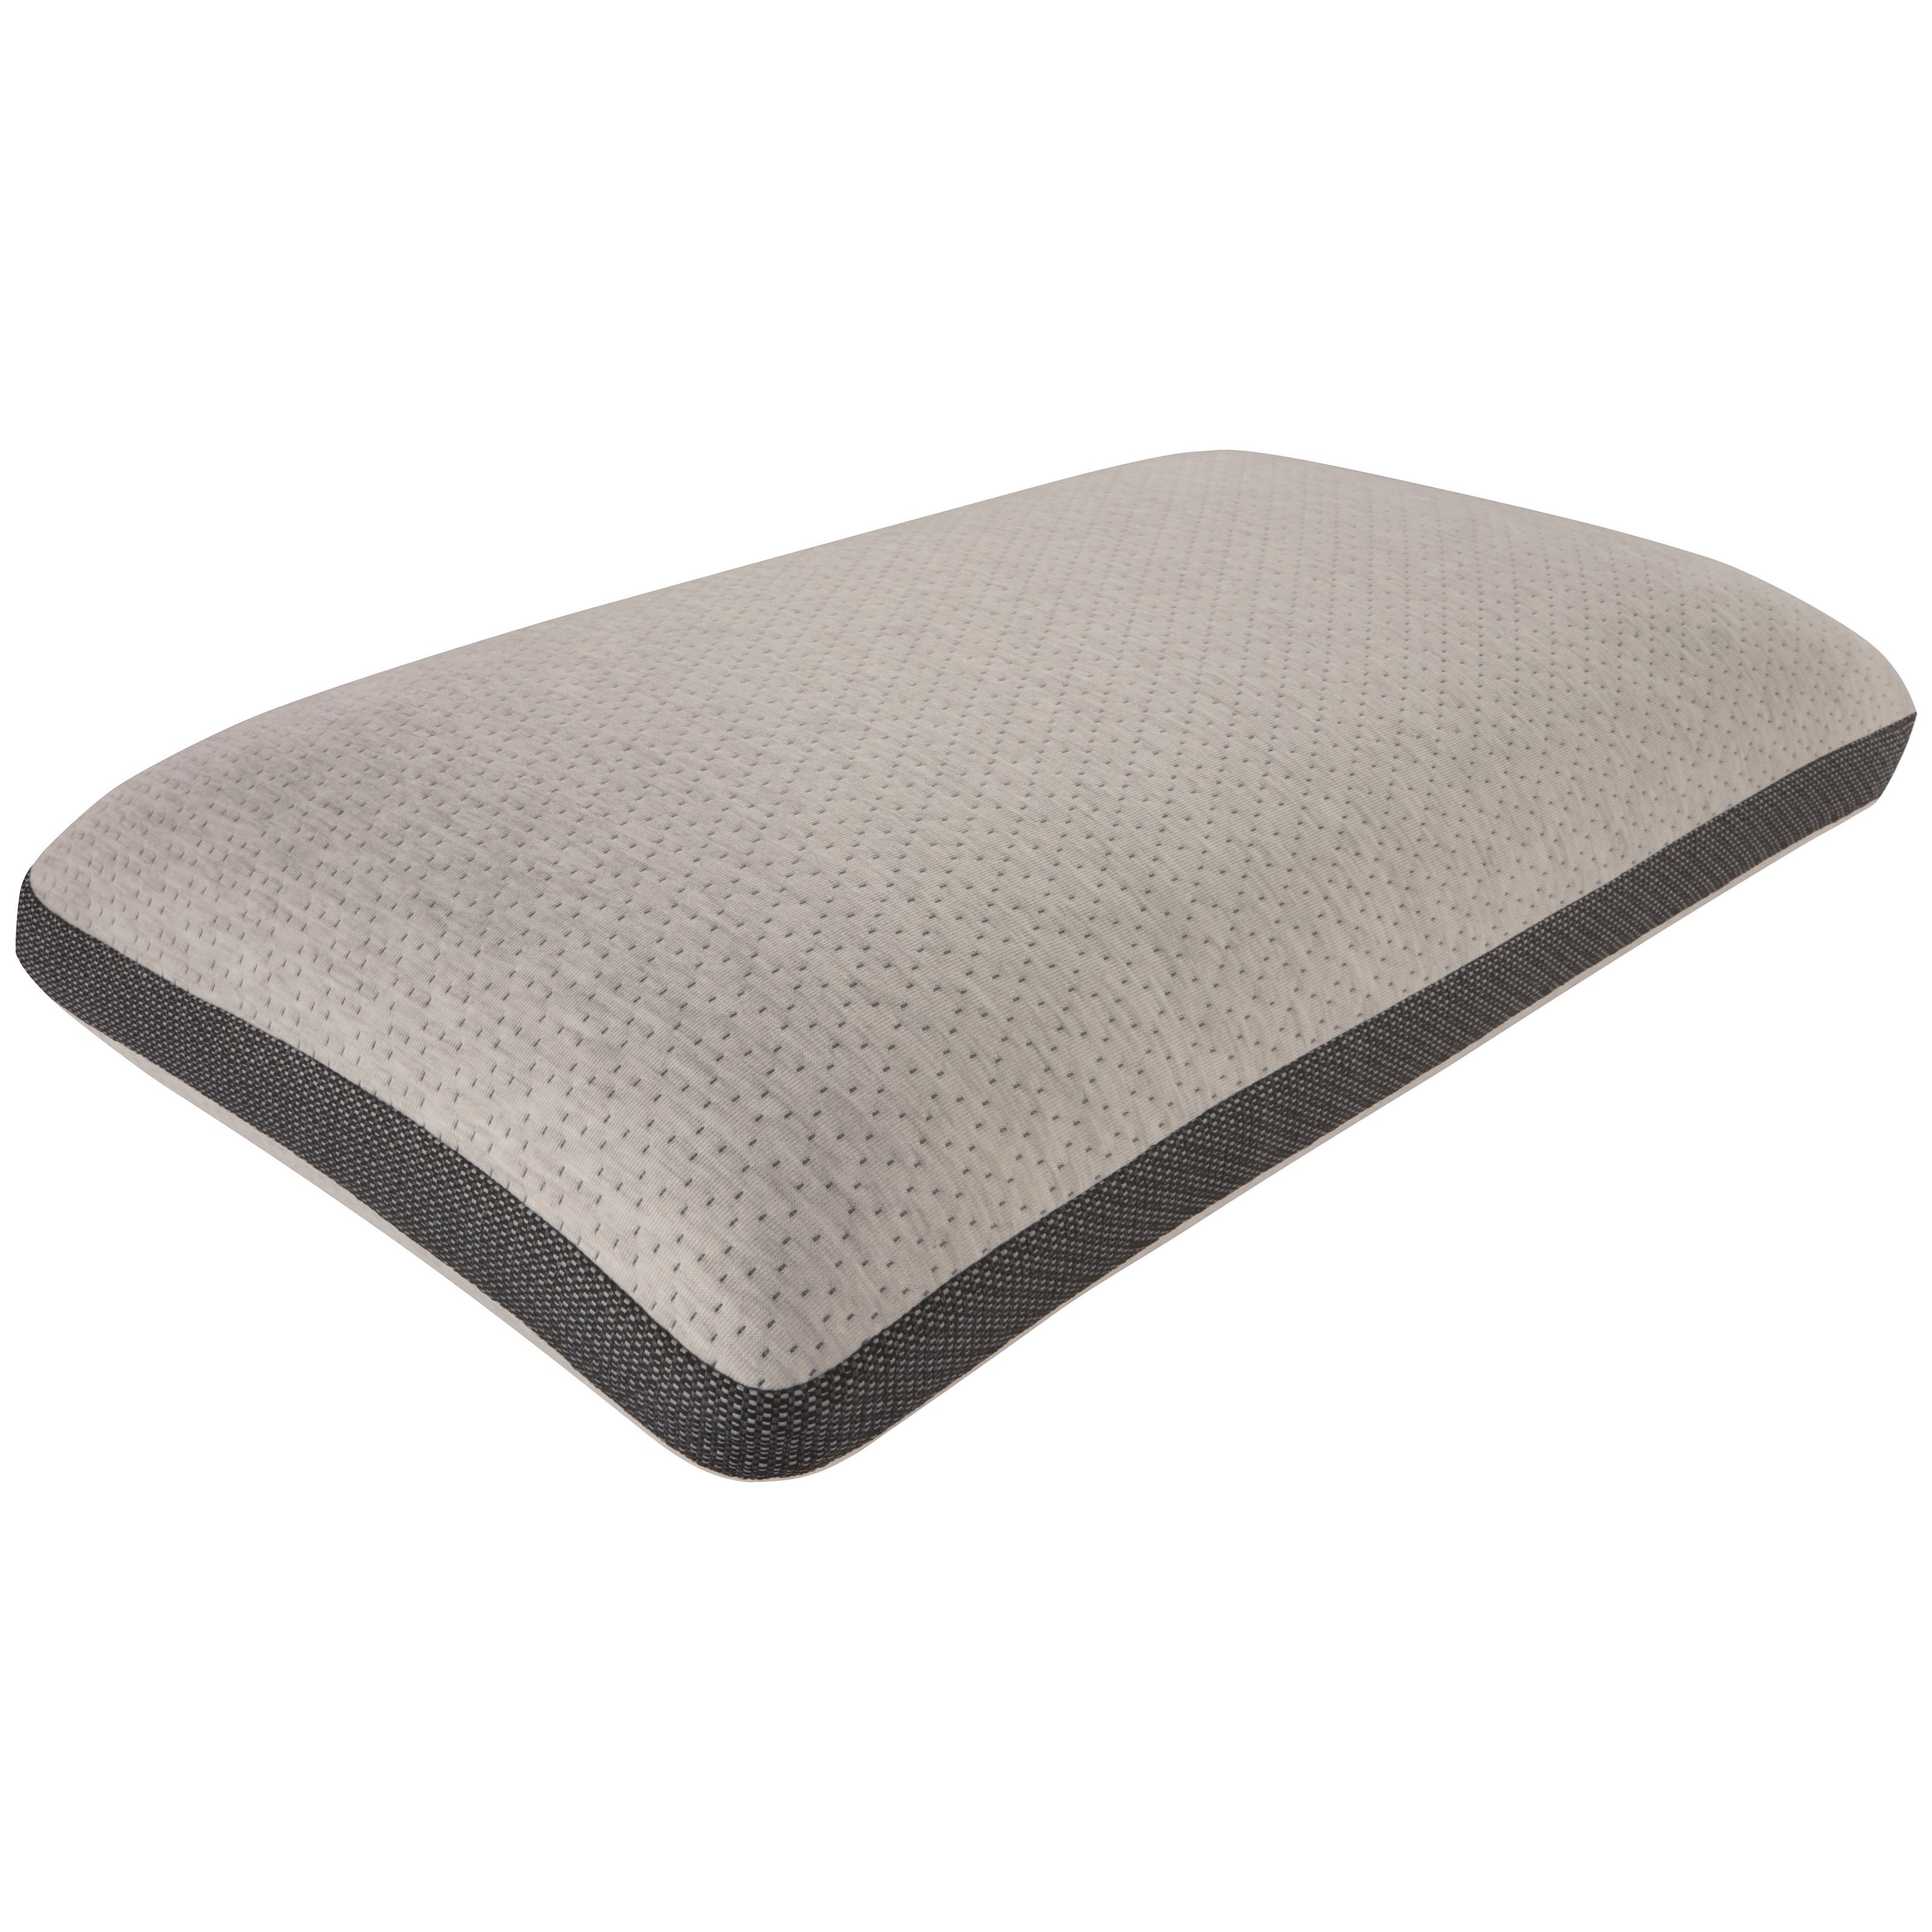 Absolute Relaxation Pillow Absolute Relaxation Pillow by Beautyrest at Houston's Yuma Furniture